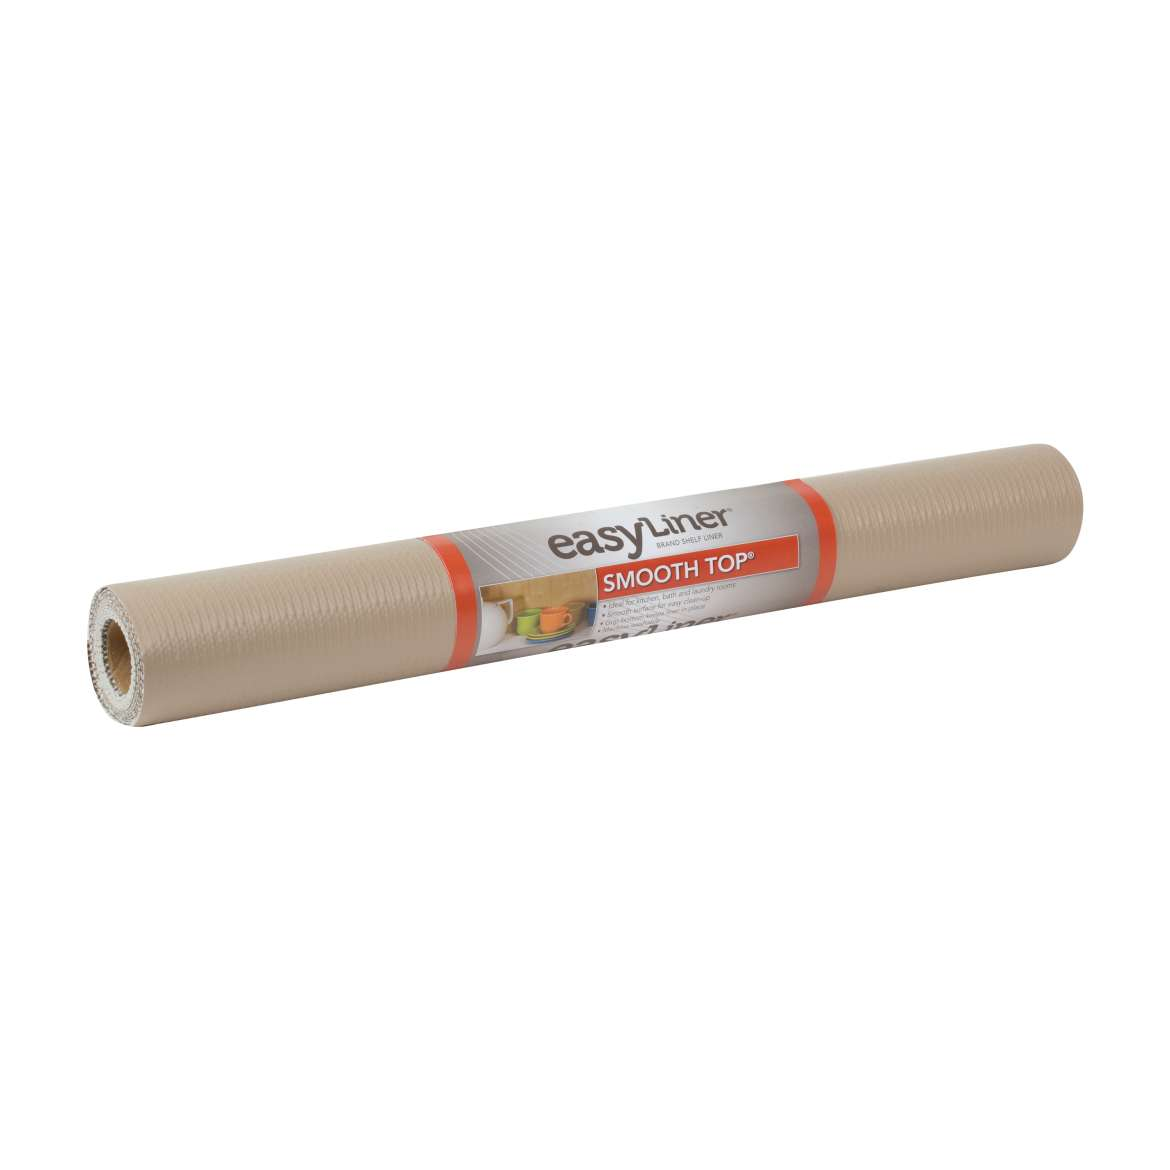 Smooth Top® Easy Liner® Brand Shelf Liner - Taupe, 20 in. x 6 ft. Image